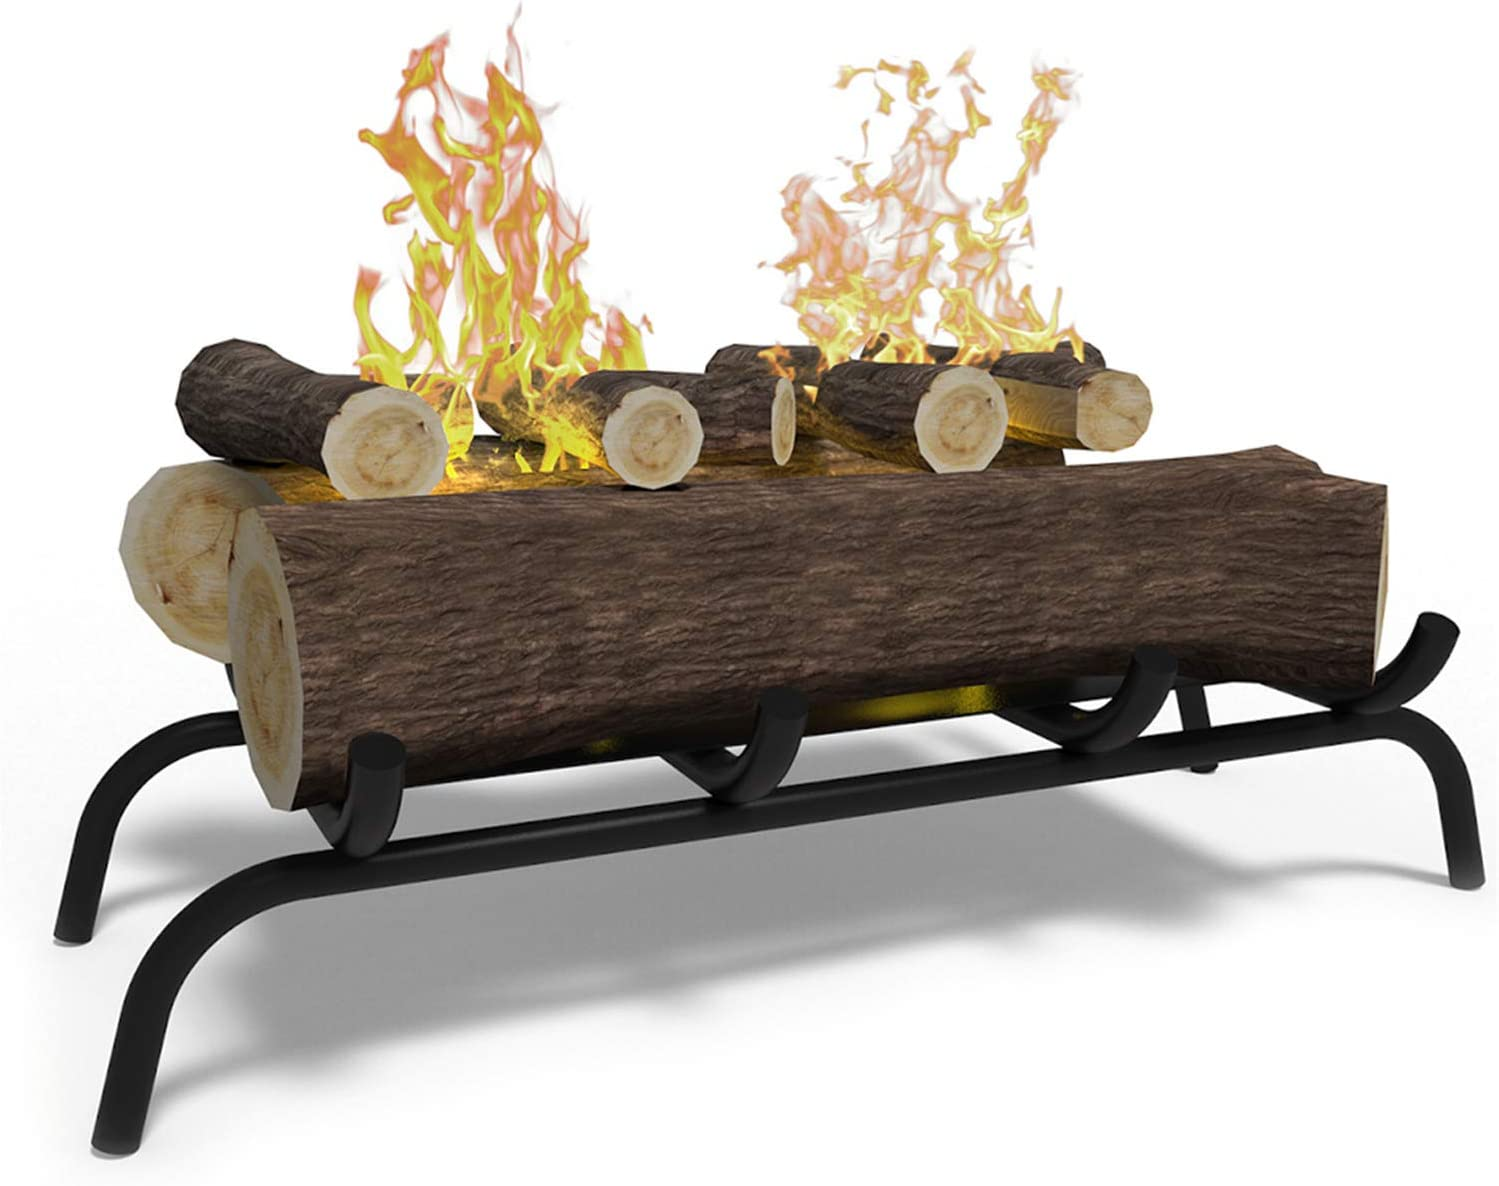 Regal Flame 18 inch Finally popular brand Convert to Ethanol Log Set Fireplace with Bu Max 84% OFF